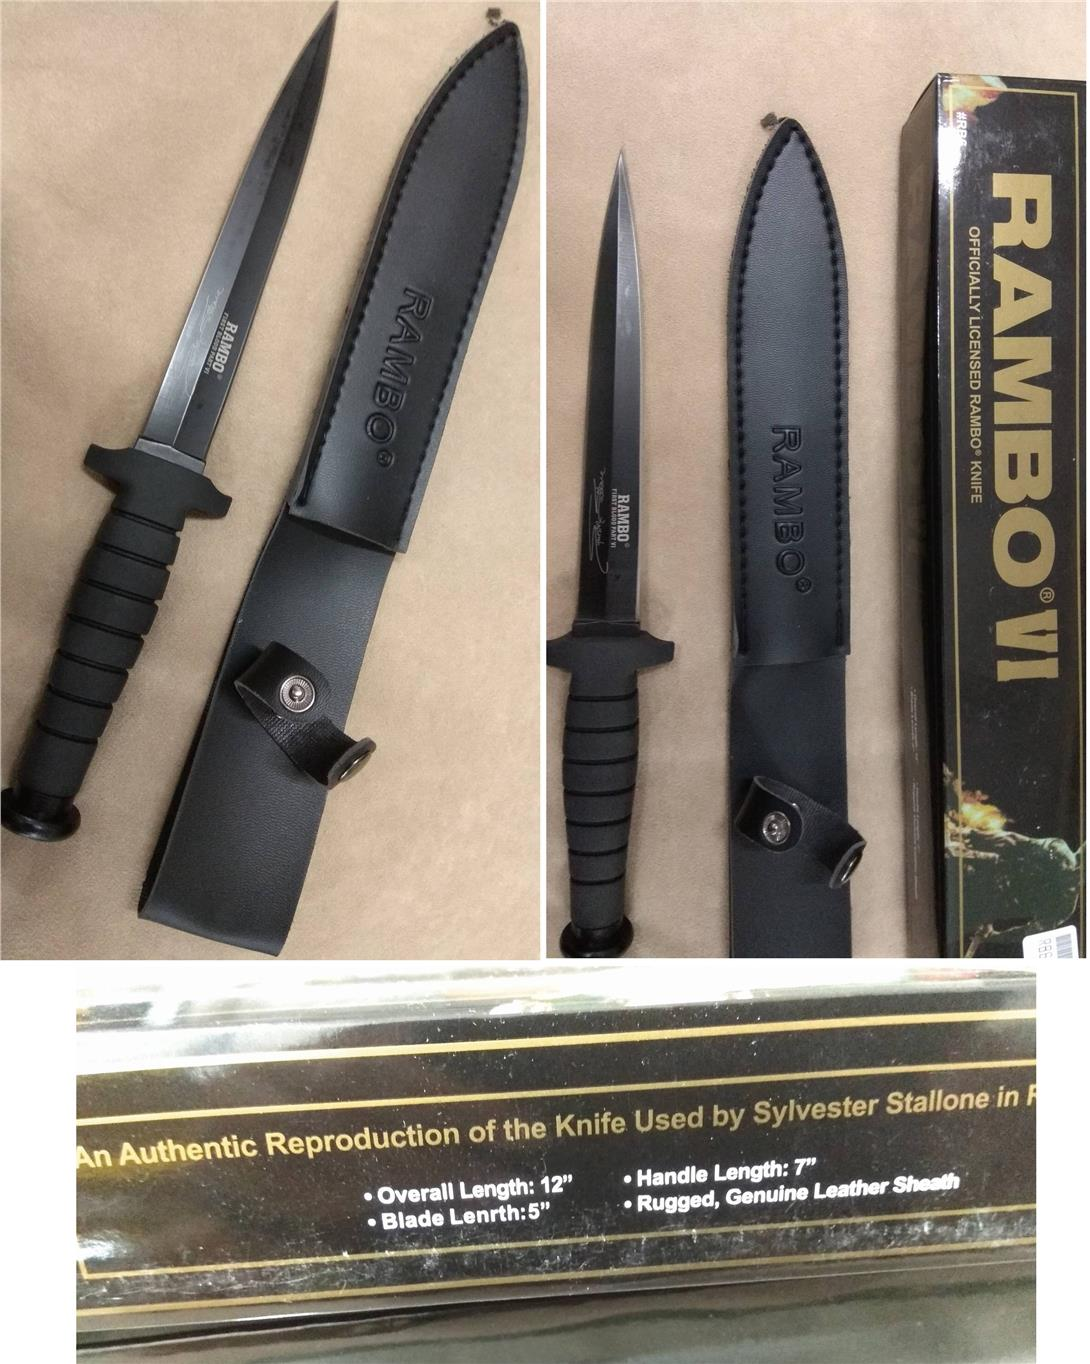 CELLY Sylvester Stallone Rambo Knife (35cm) (KN 035)